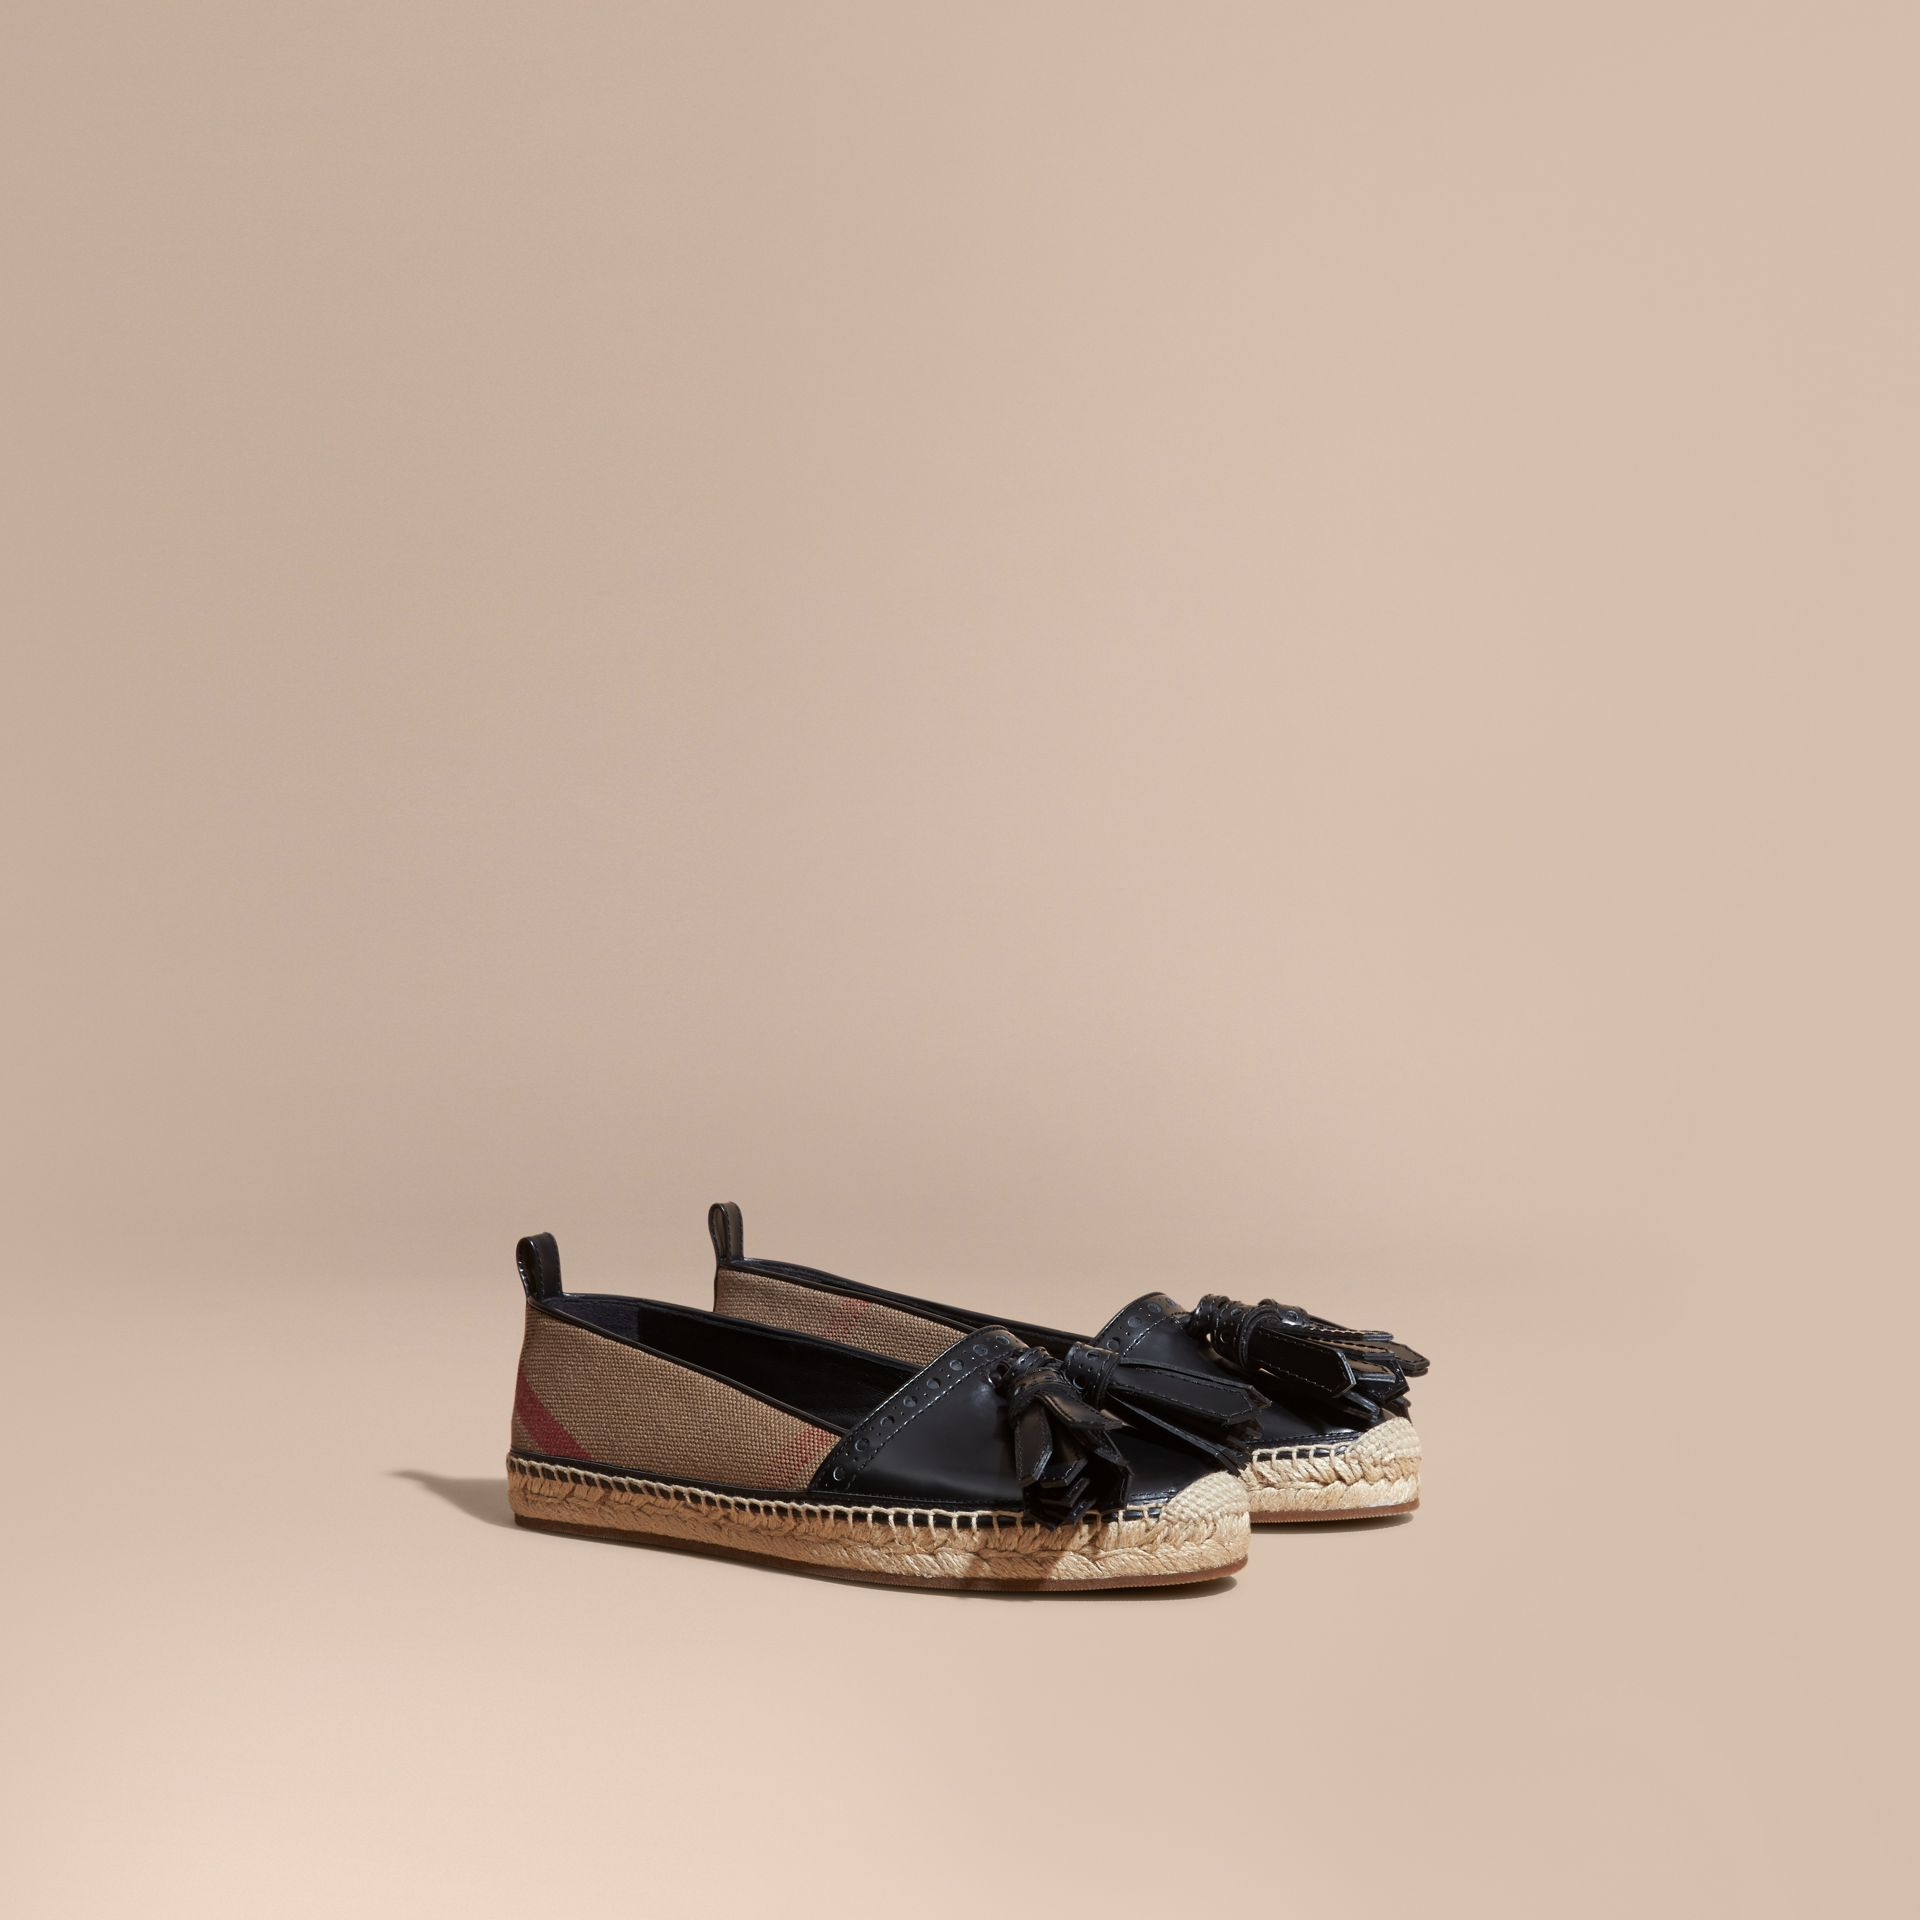 Black Tasselled Canvas Check and Leather Espadrilles - gallery image 1